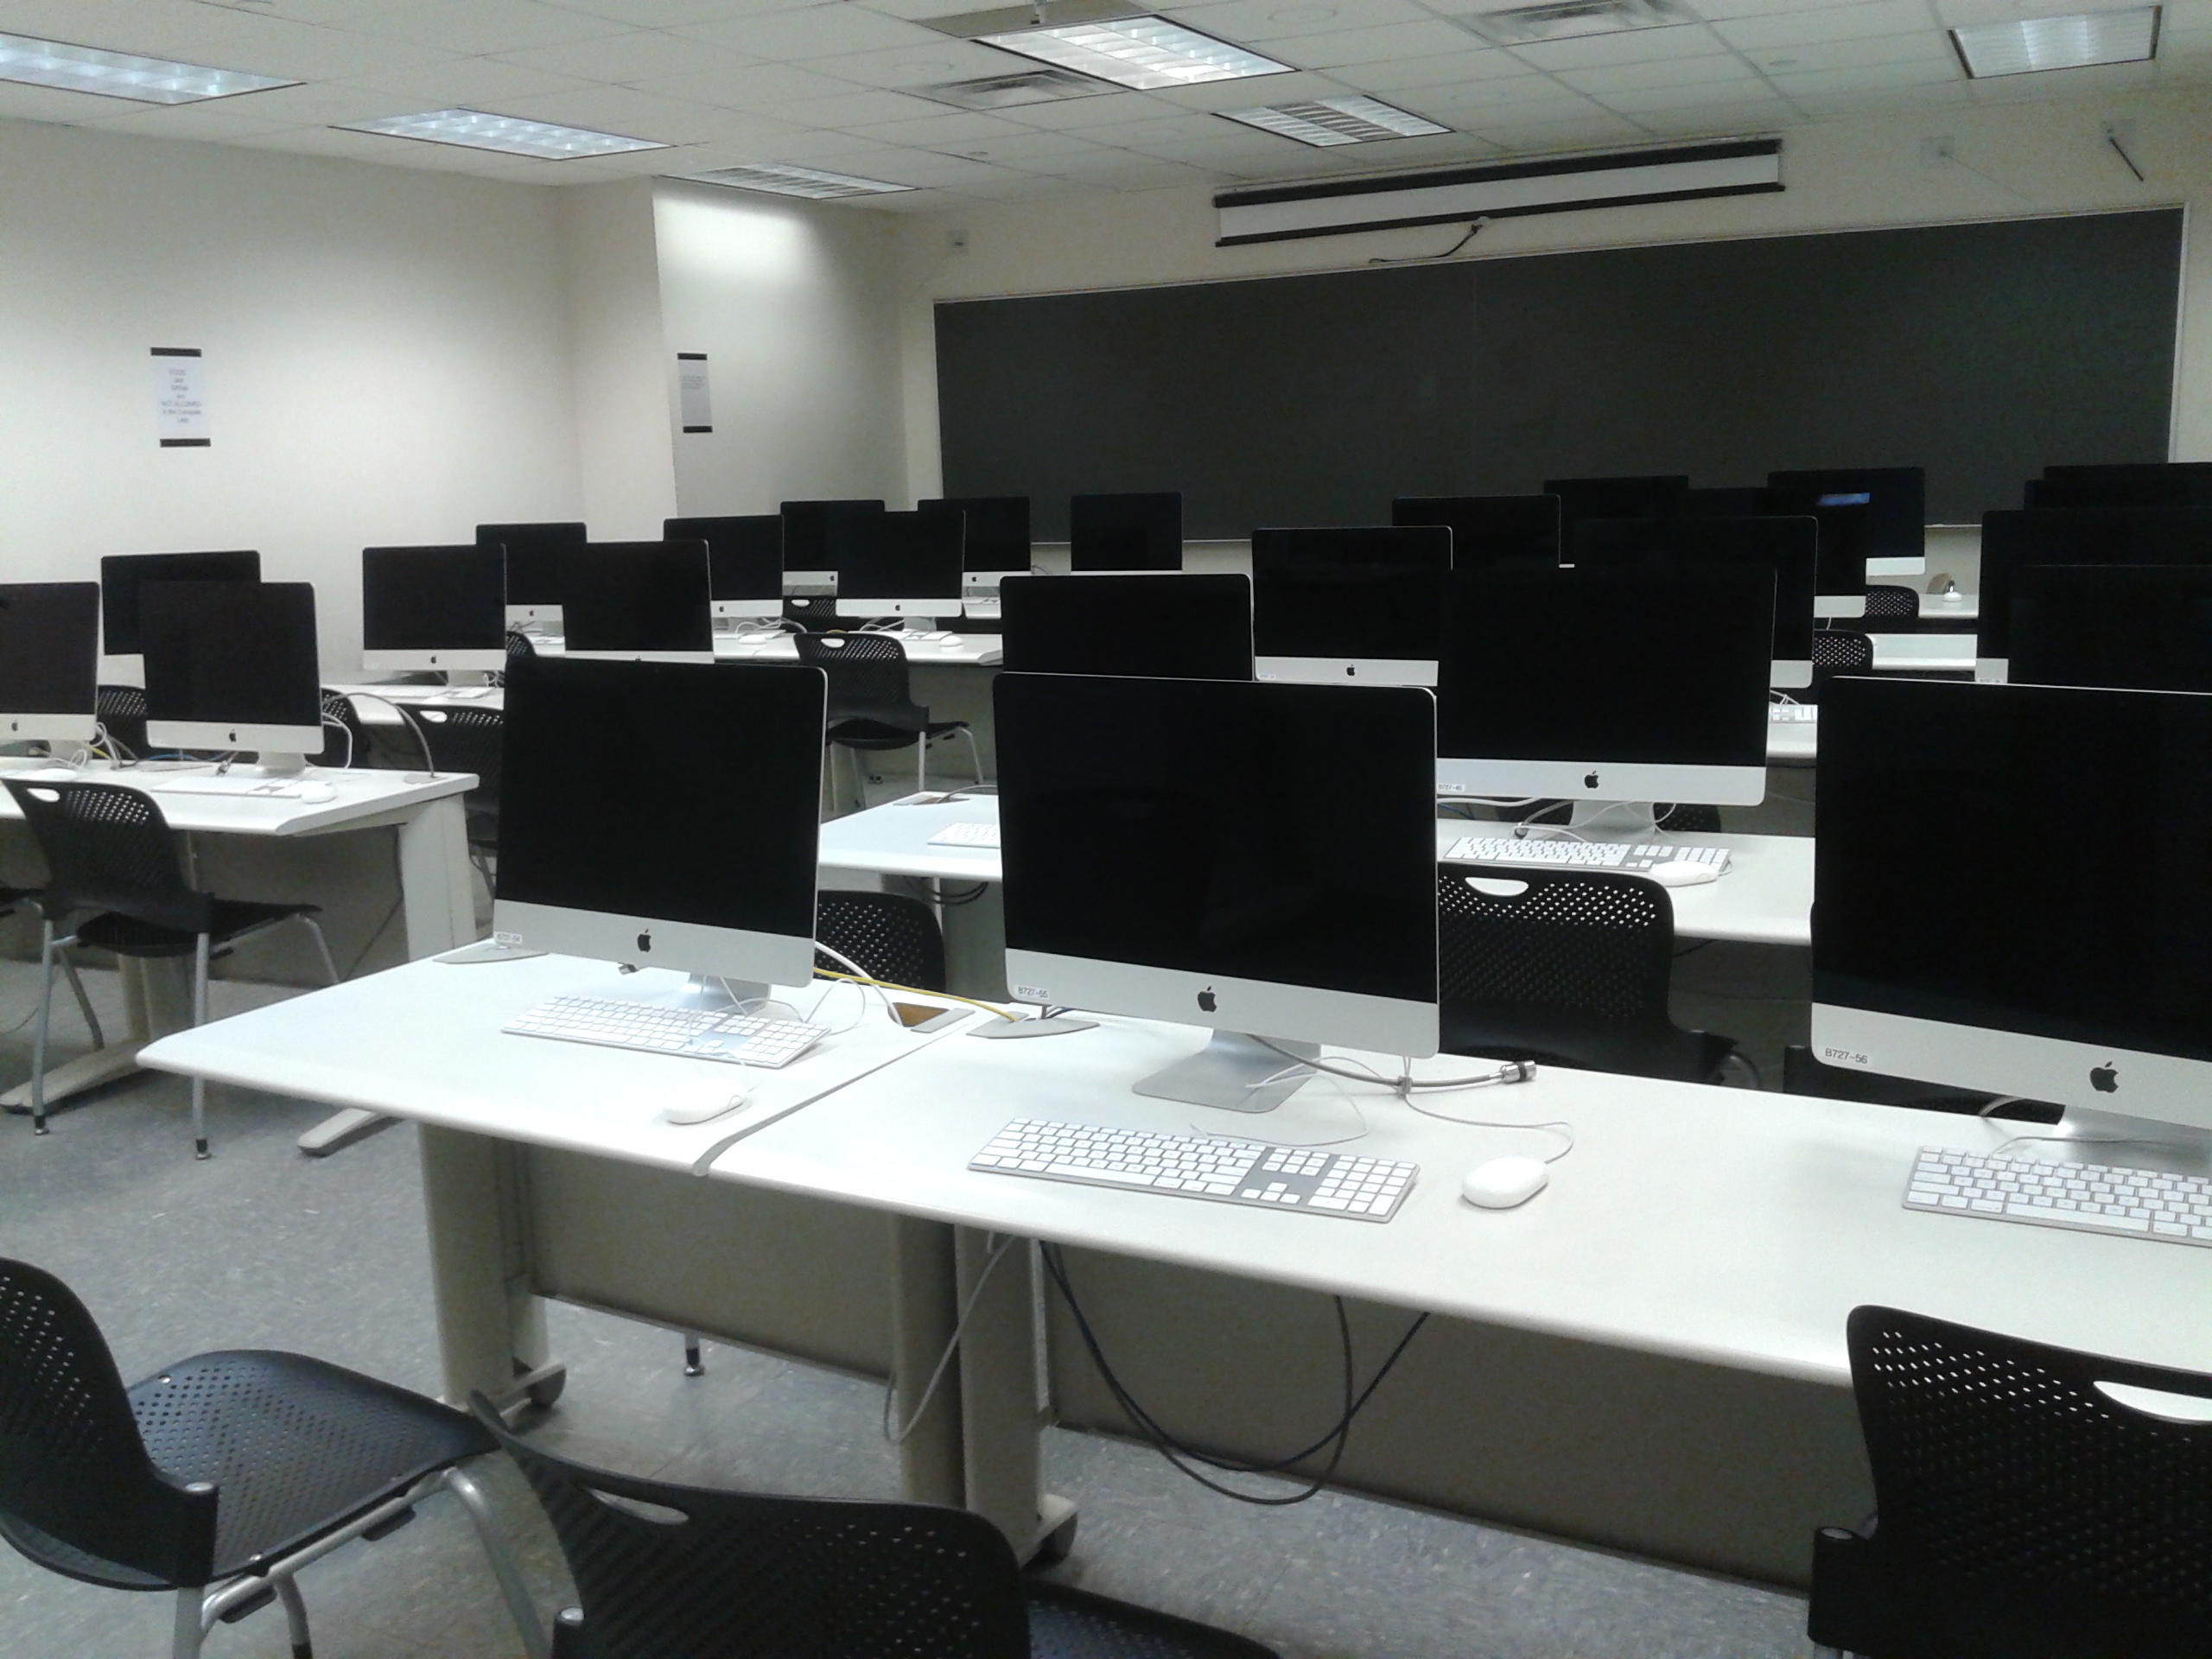 [image of classroom style computer lab]